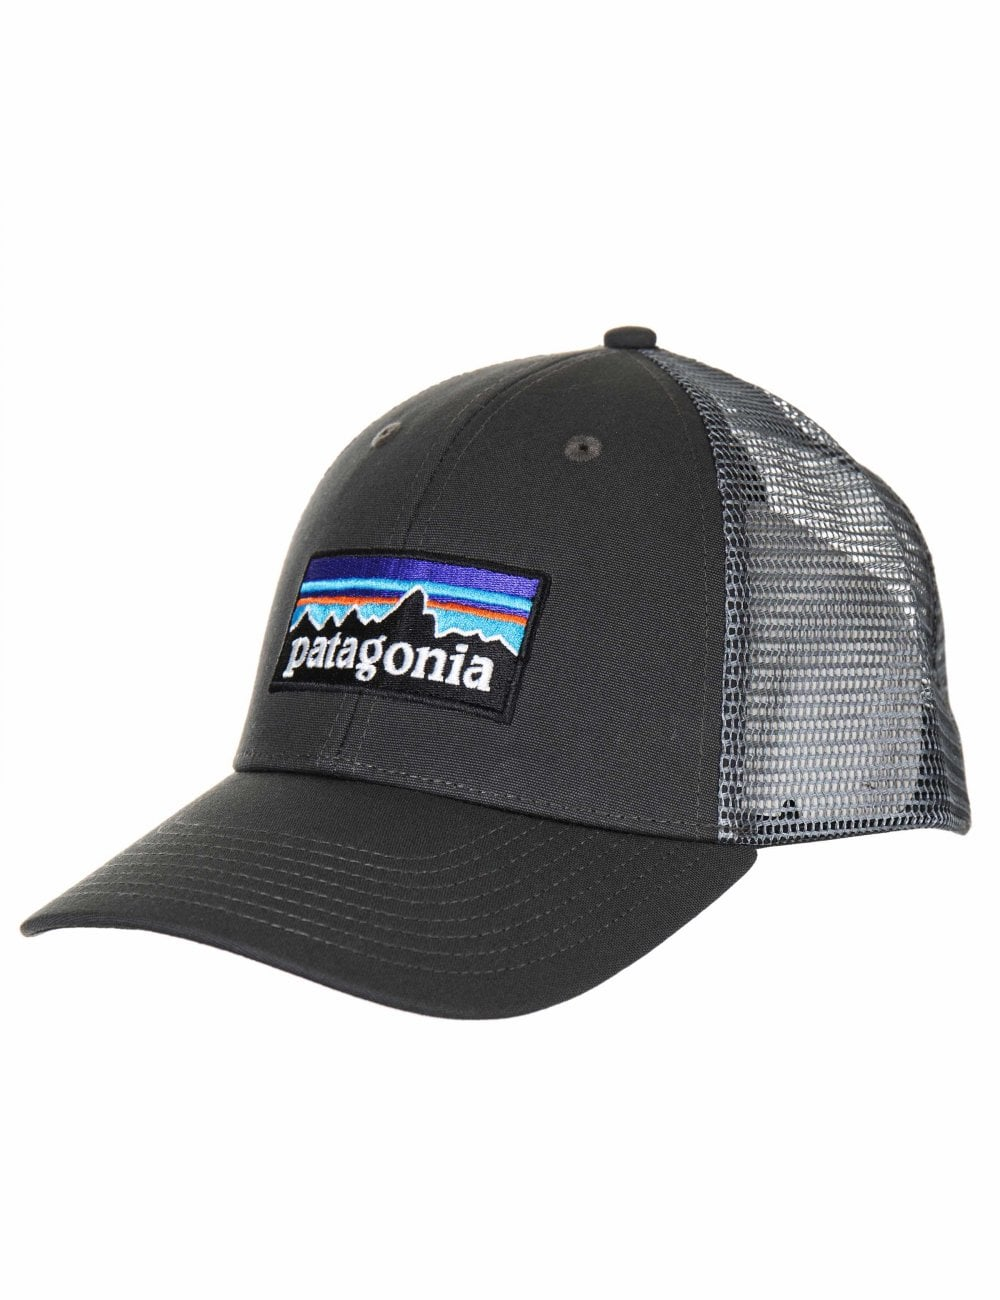 2d0c806f5d4cc Patagonia P-6 Logo LoPro Trucker Hat - Forge Grey w Forge Grey ...